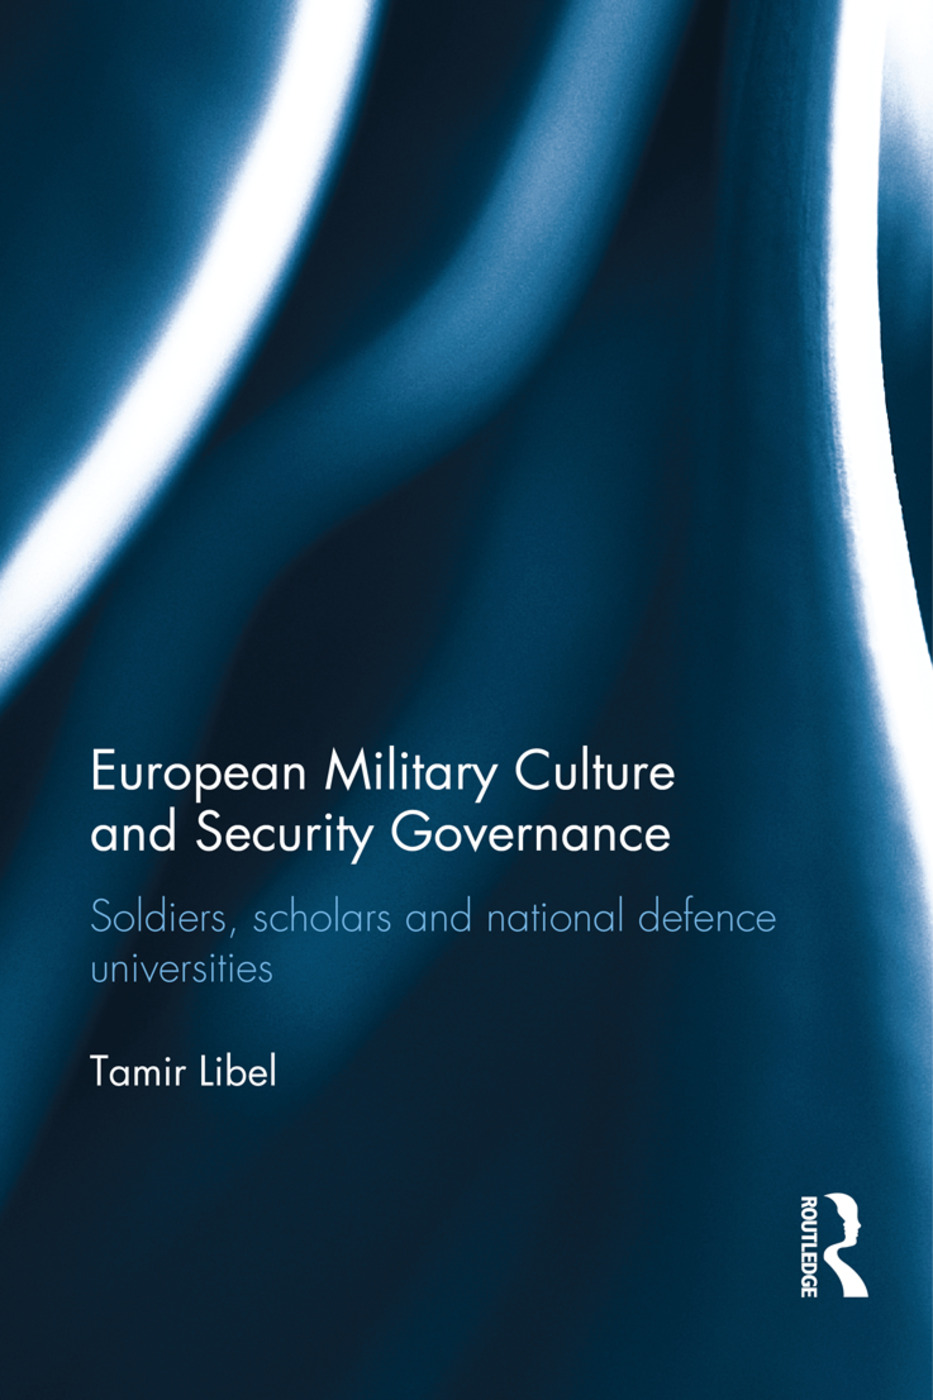 European Military Culture and Security Governance